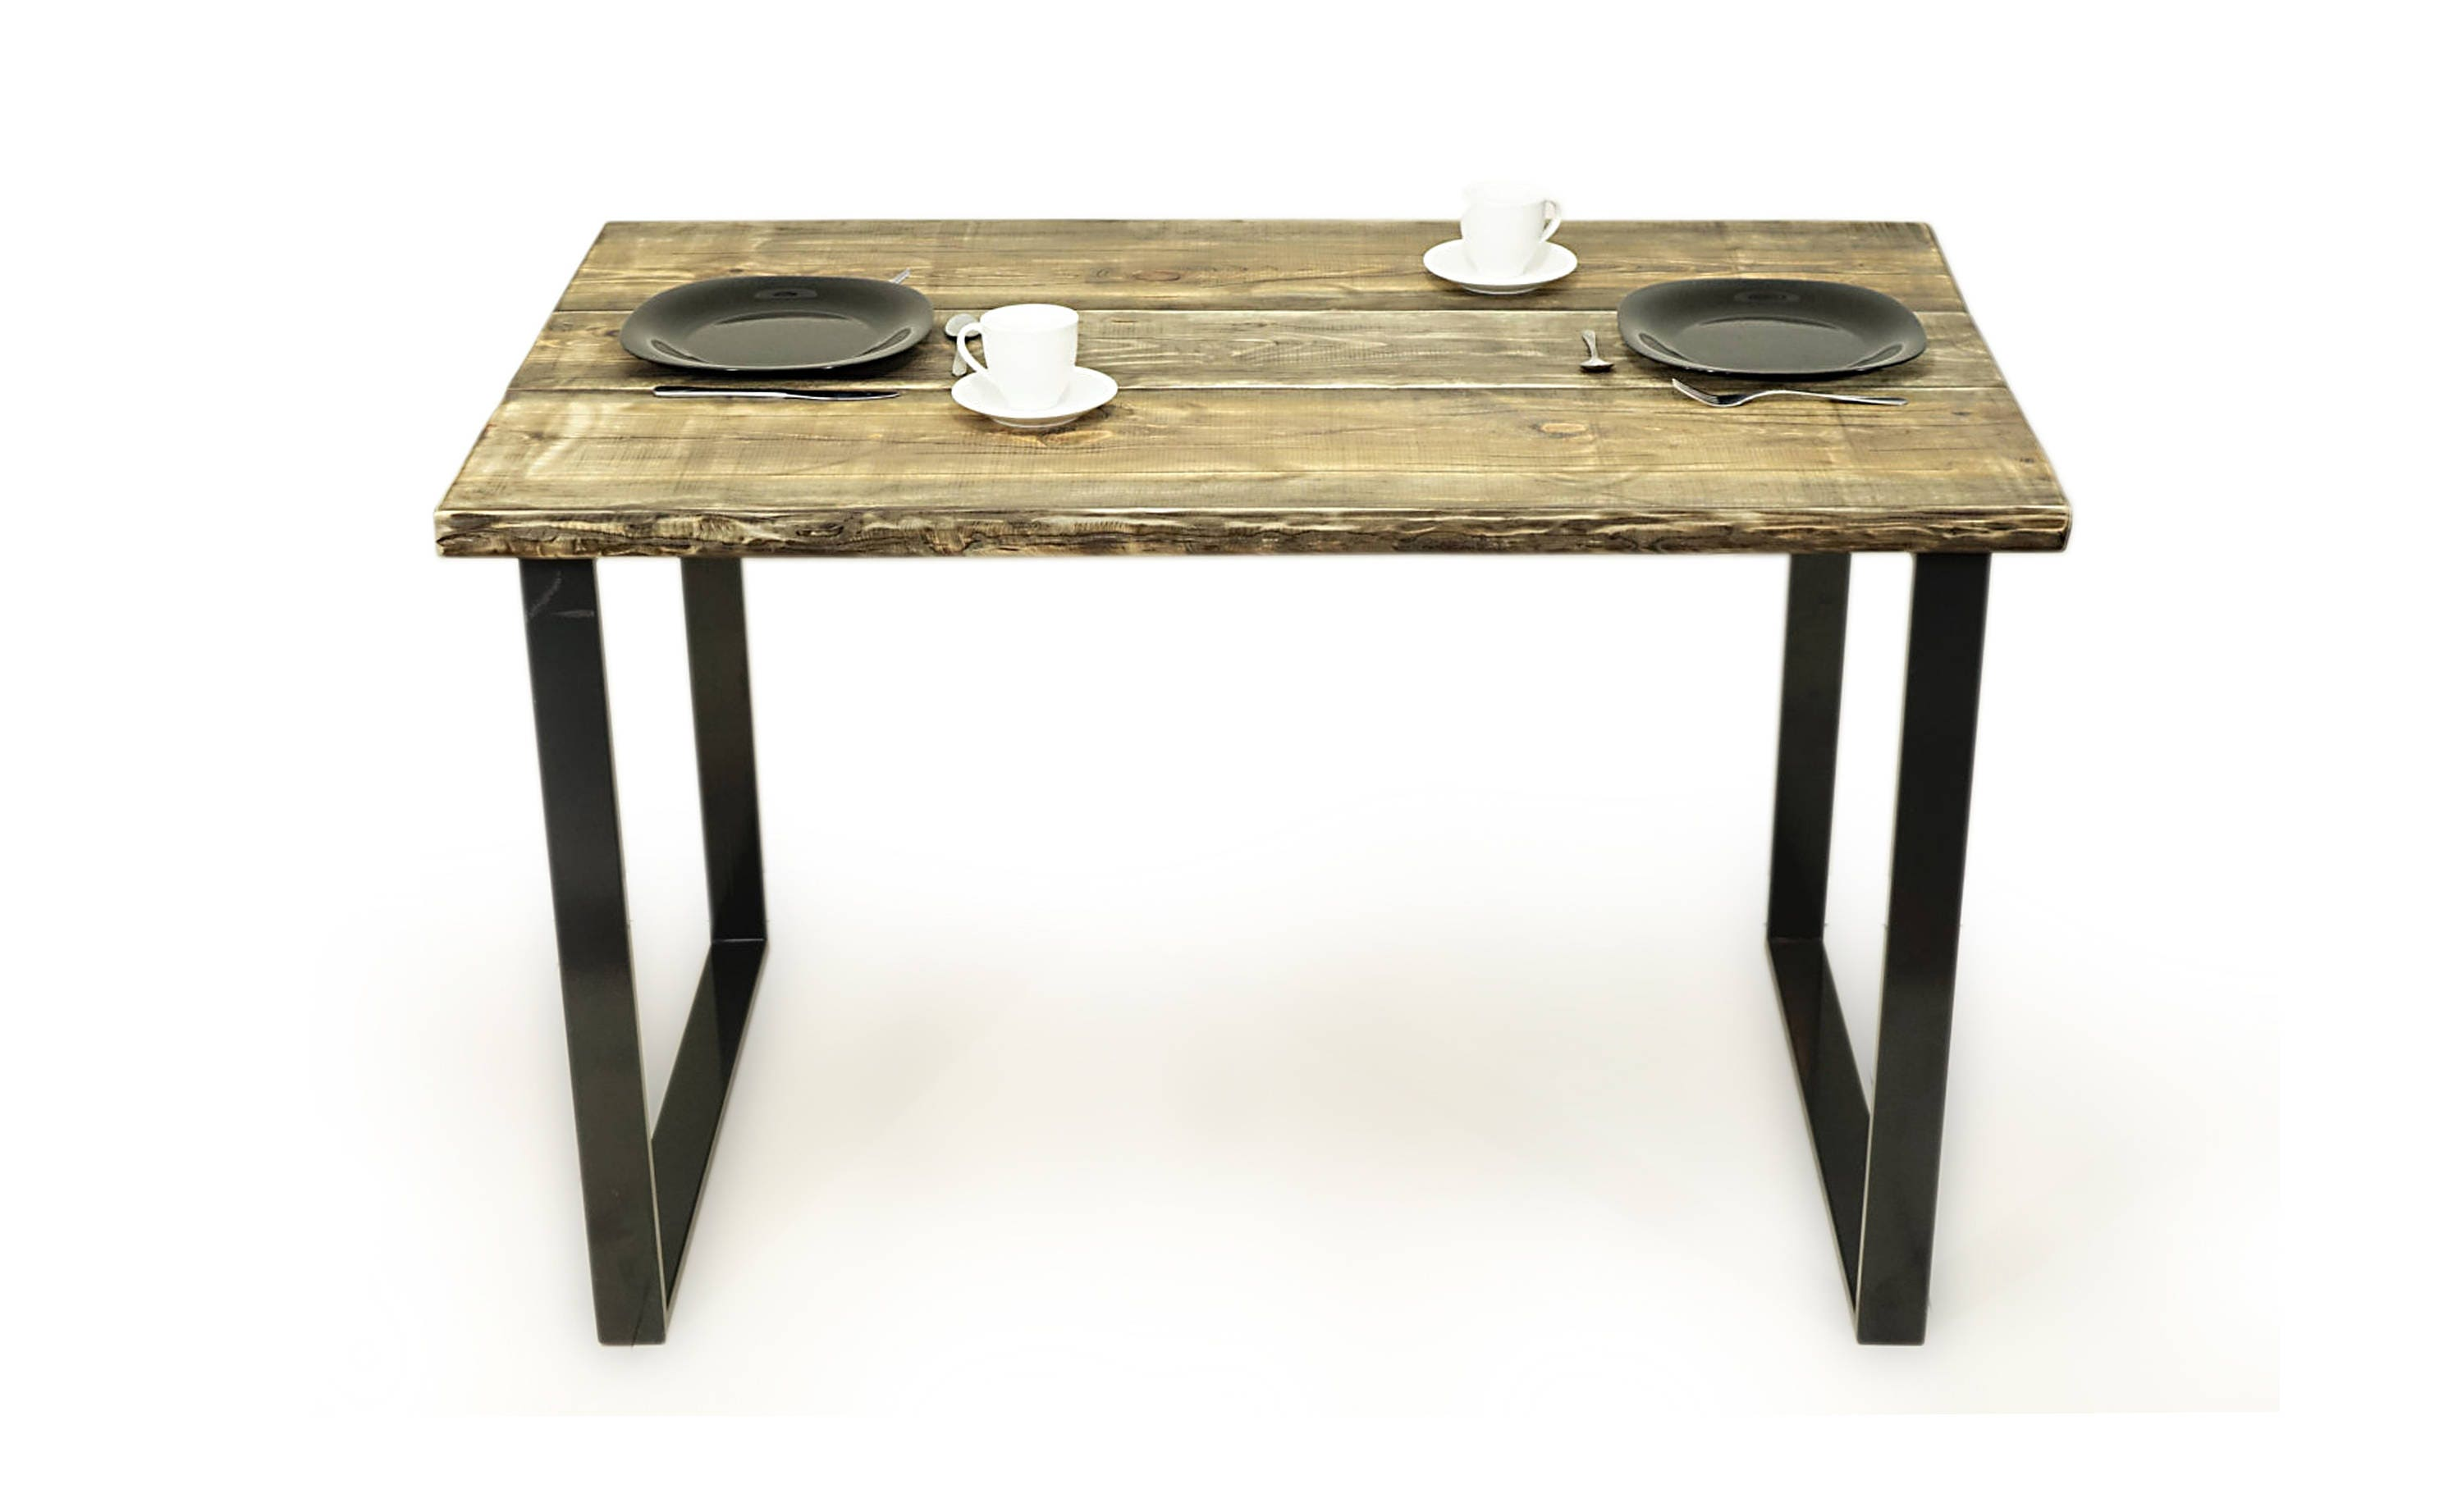 live edge table reclaimed wood table planks dining table sofa table table bench industrial. Black Bedroom Furniture Sets. Home Design Ideas